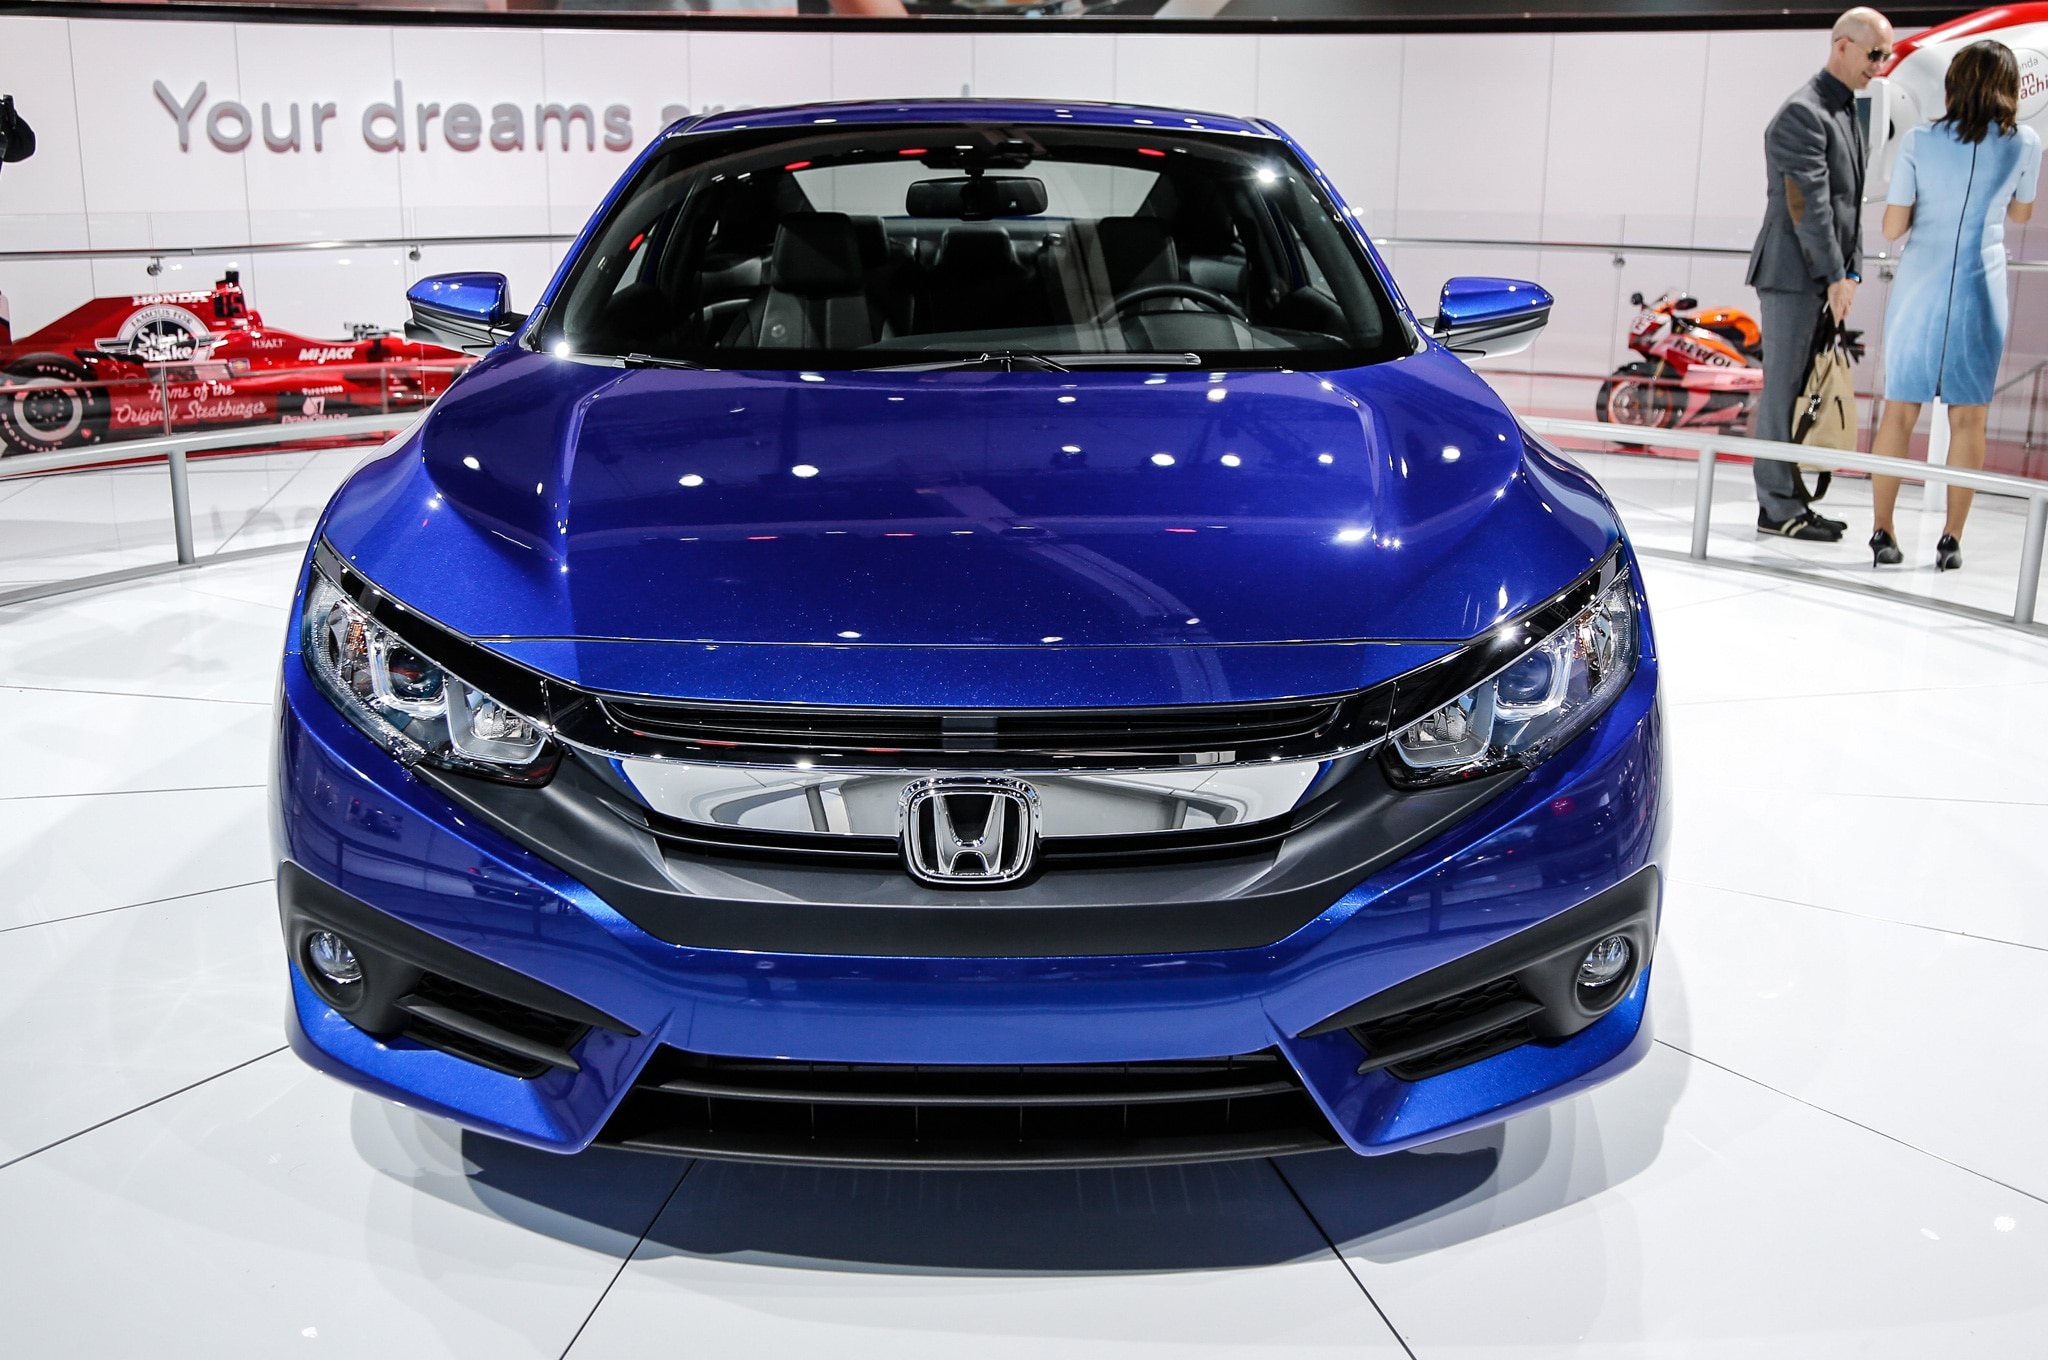 Honda civic coupe 2016 primer vistazo - 2016 honda civic si coupe interior ...